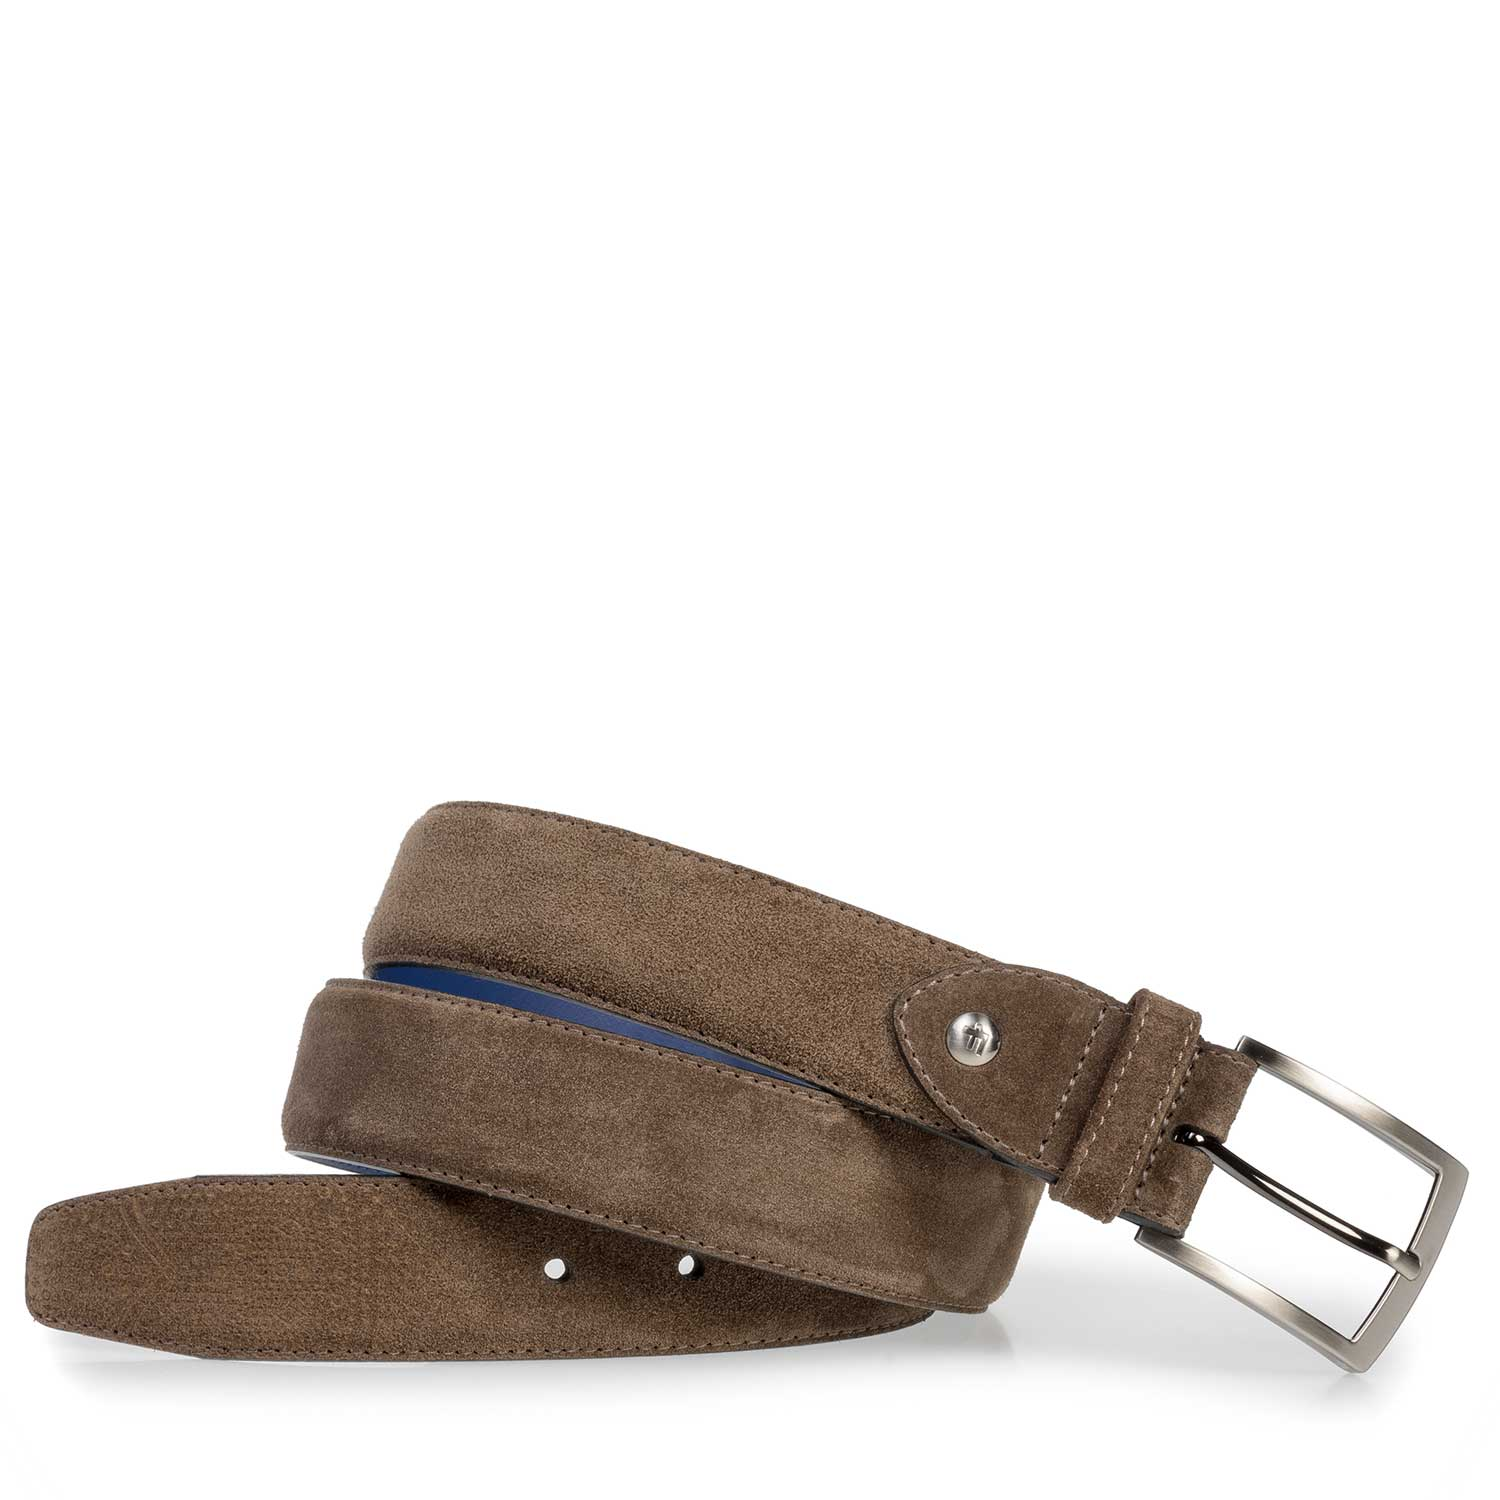 75210/04 - Dark taupe-coloured suede leather belt